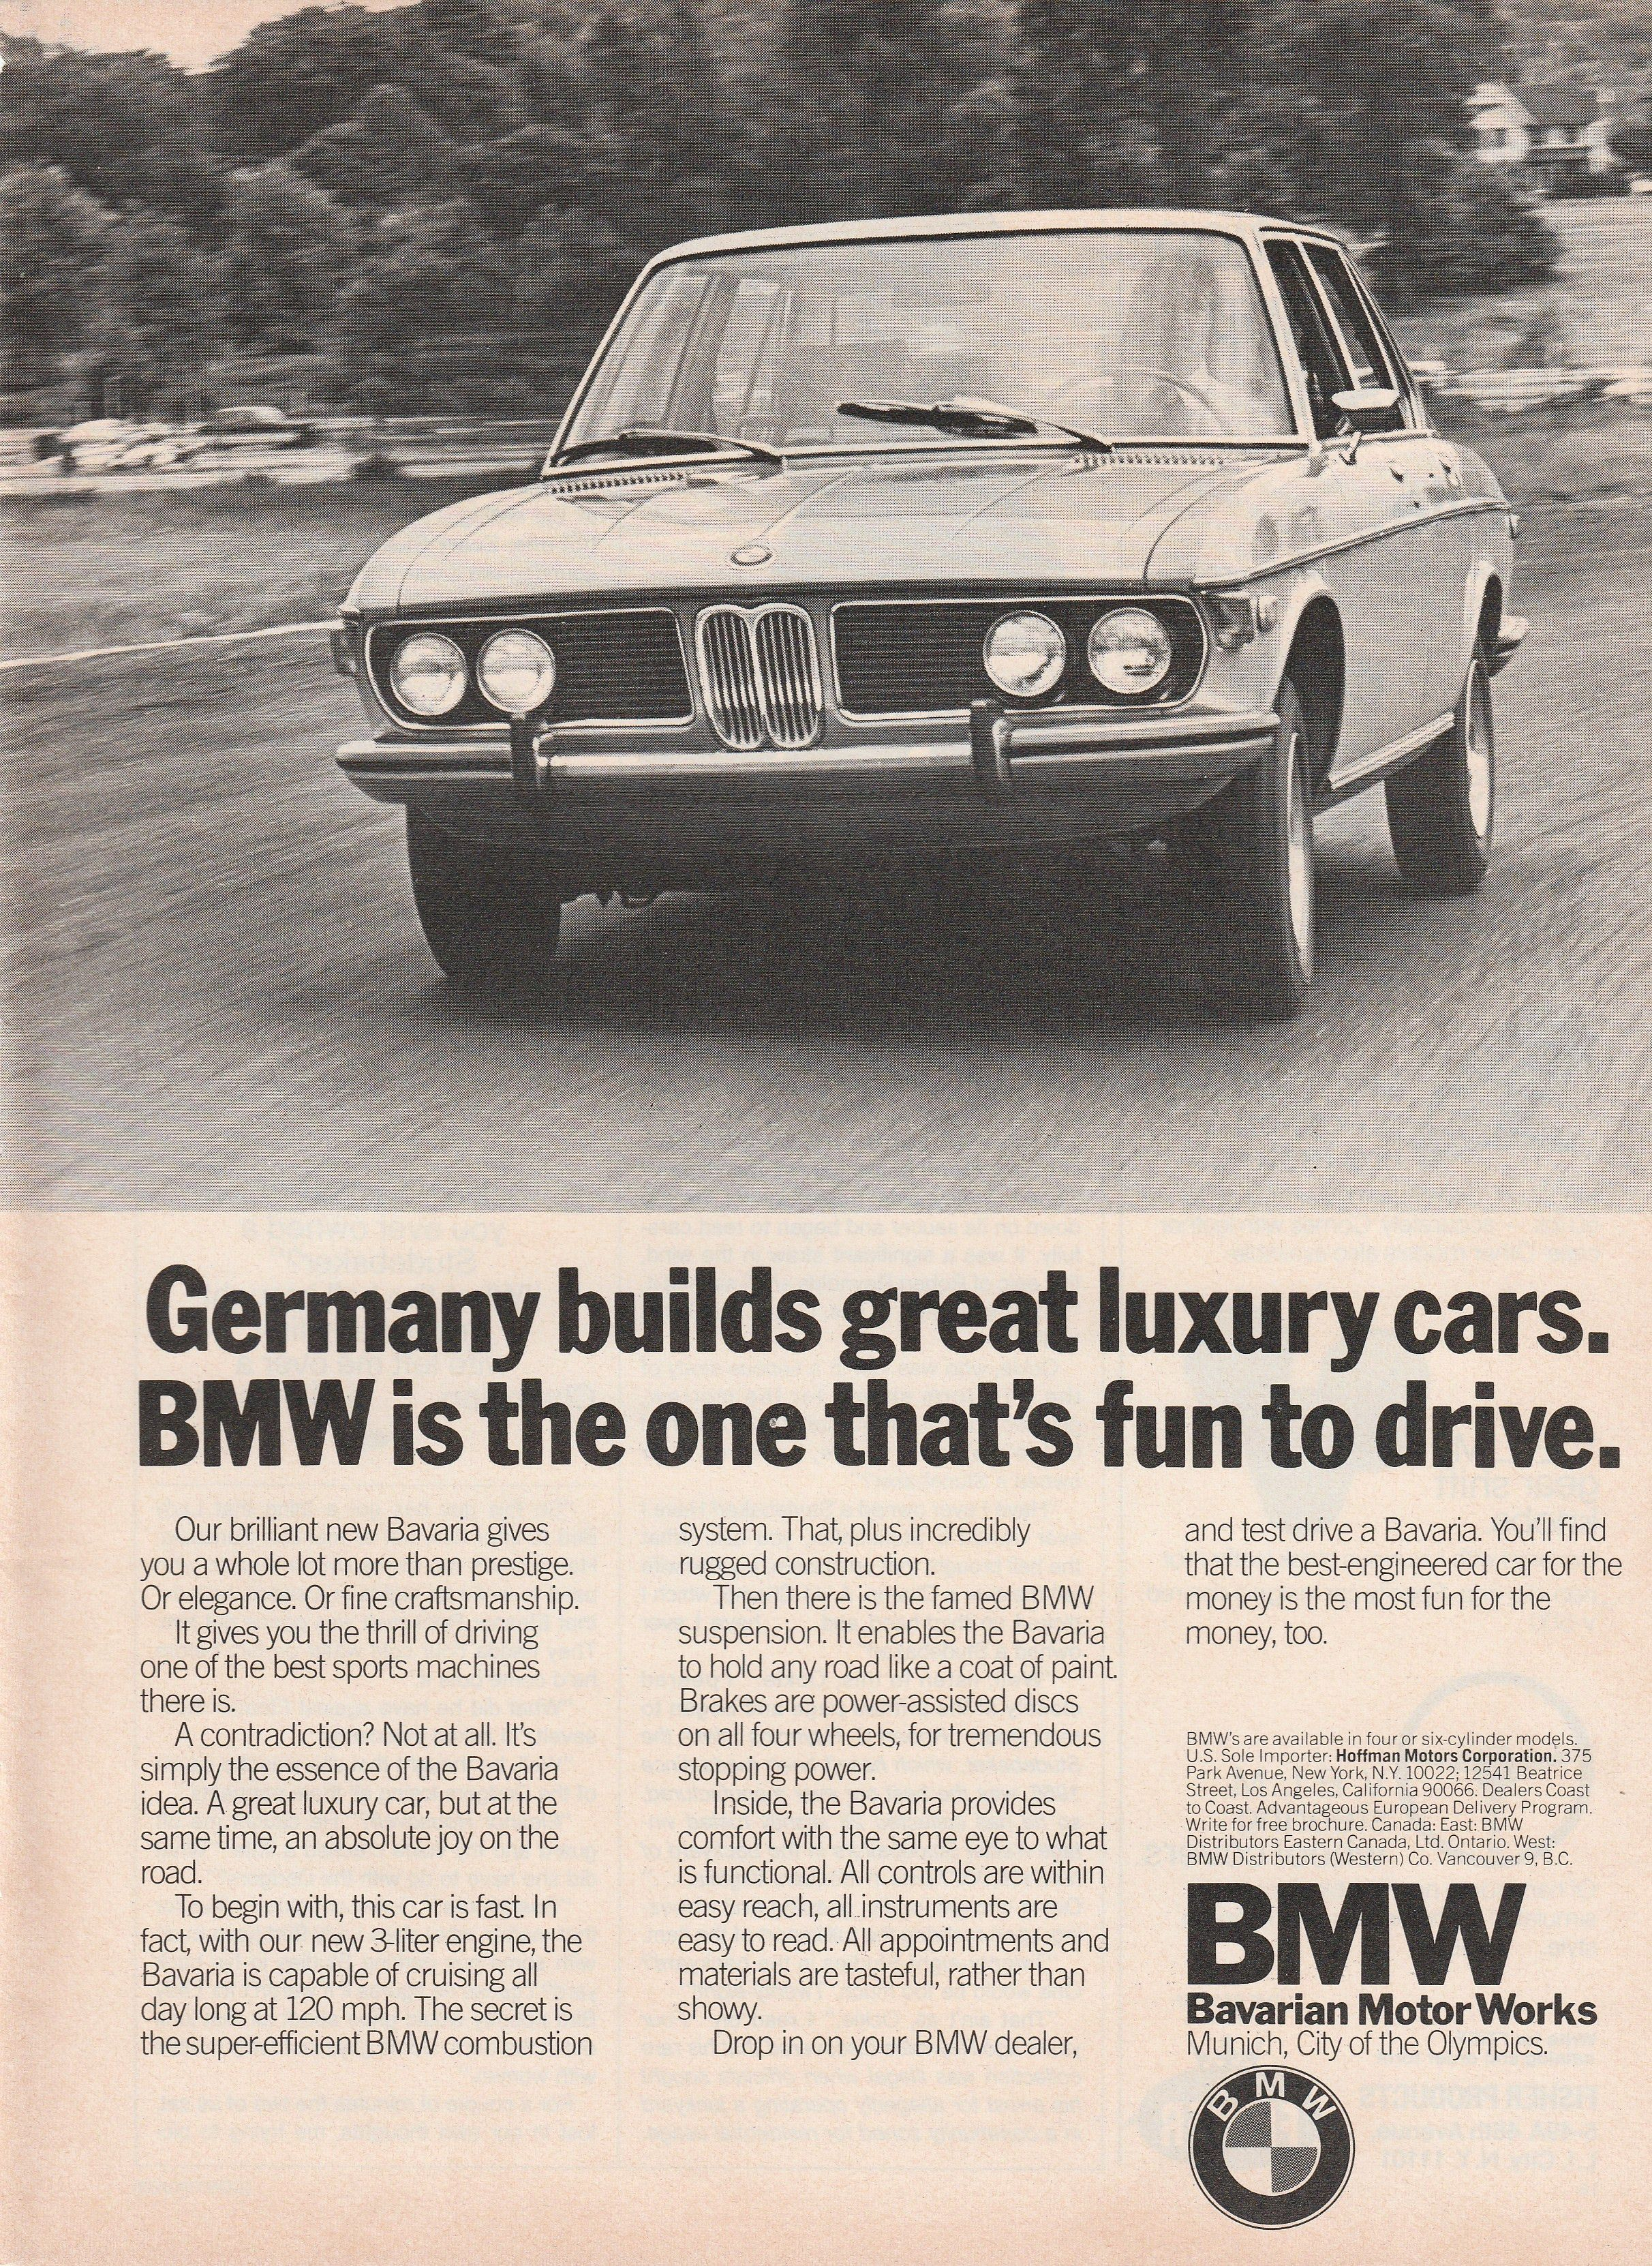 1969 1975 BMW the one that s fun to drive vintage ad